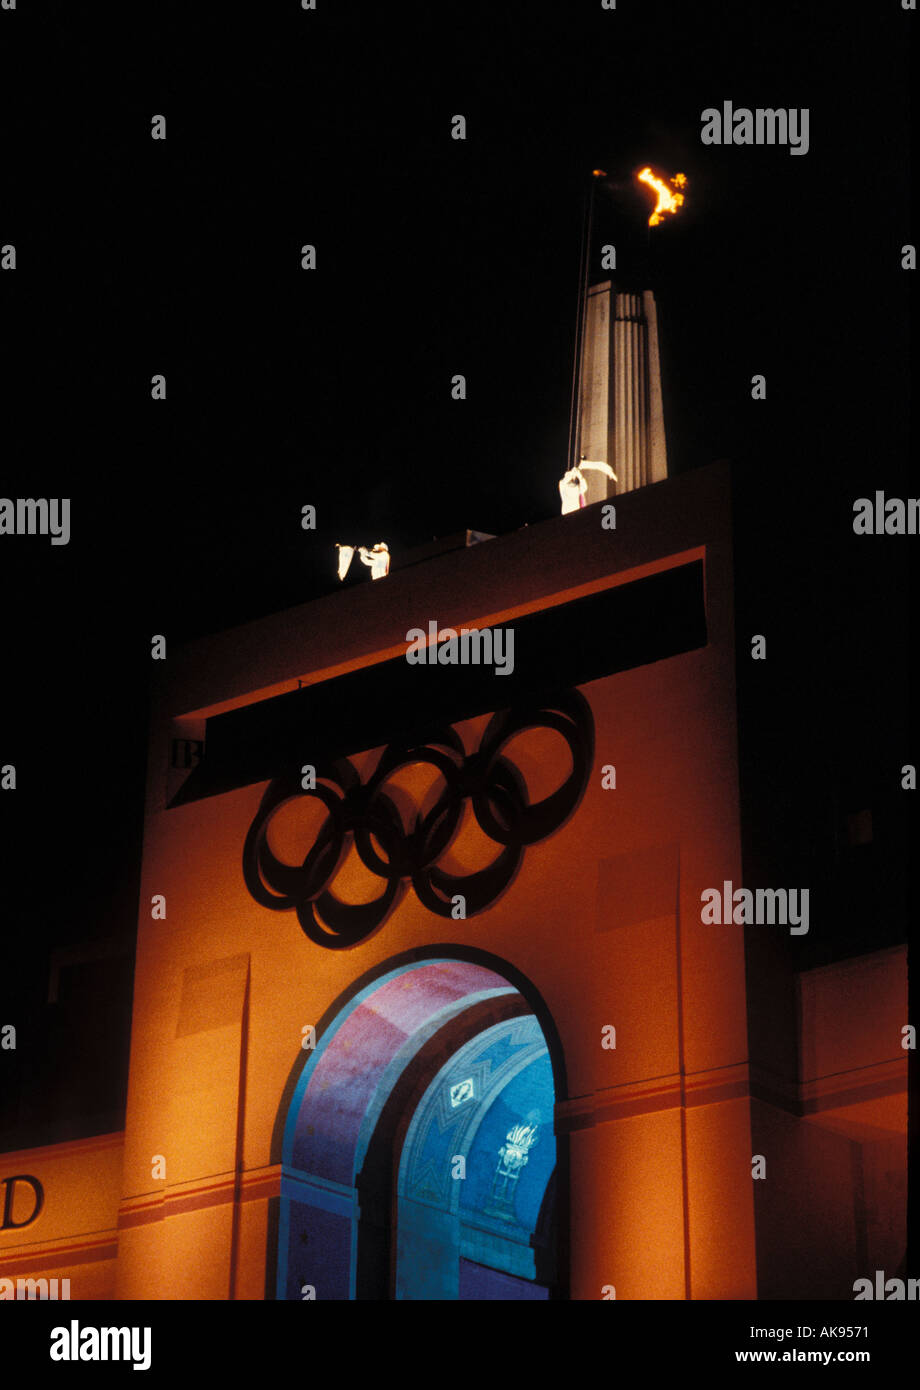 Ceremonies at the L A Olympics - Stock Image